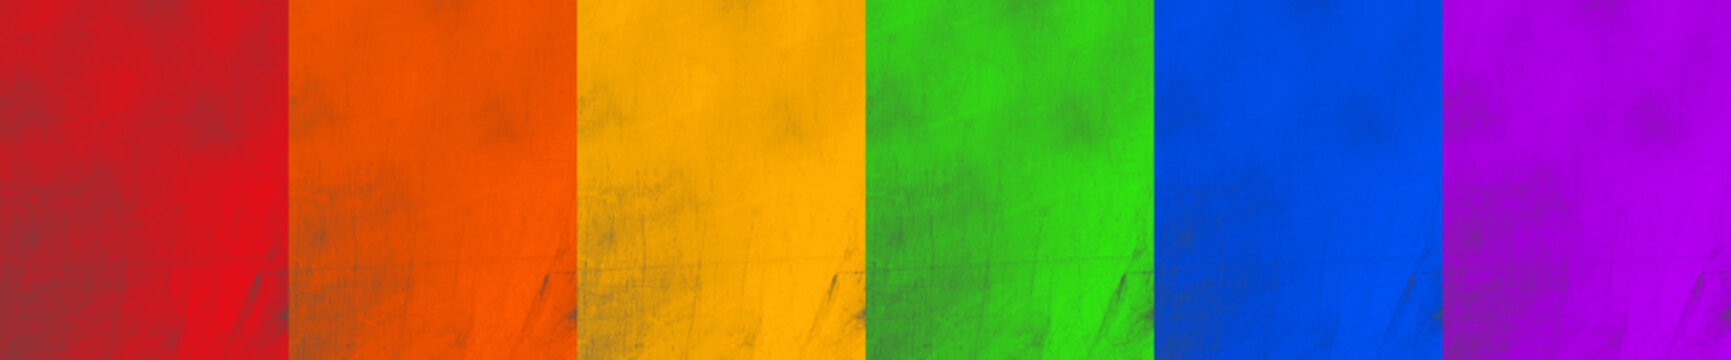 LGBT grunge colorful background. abstract  web backdrop - Image